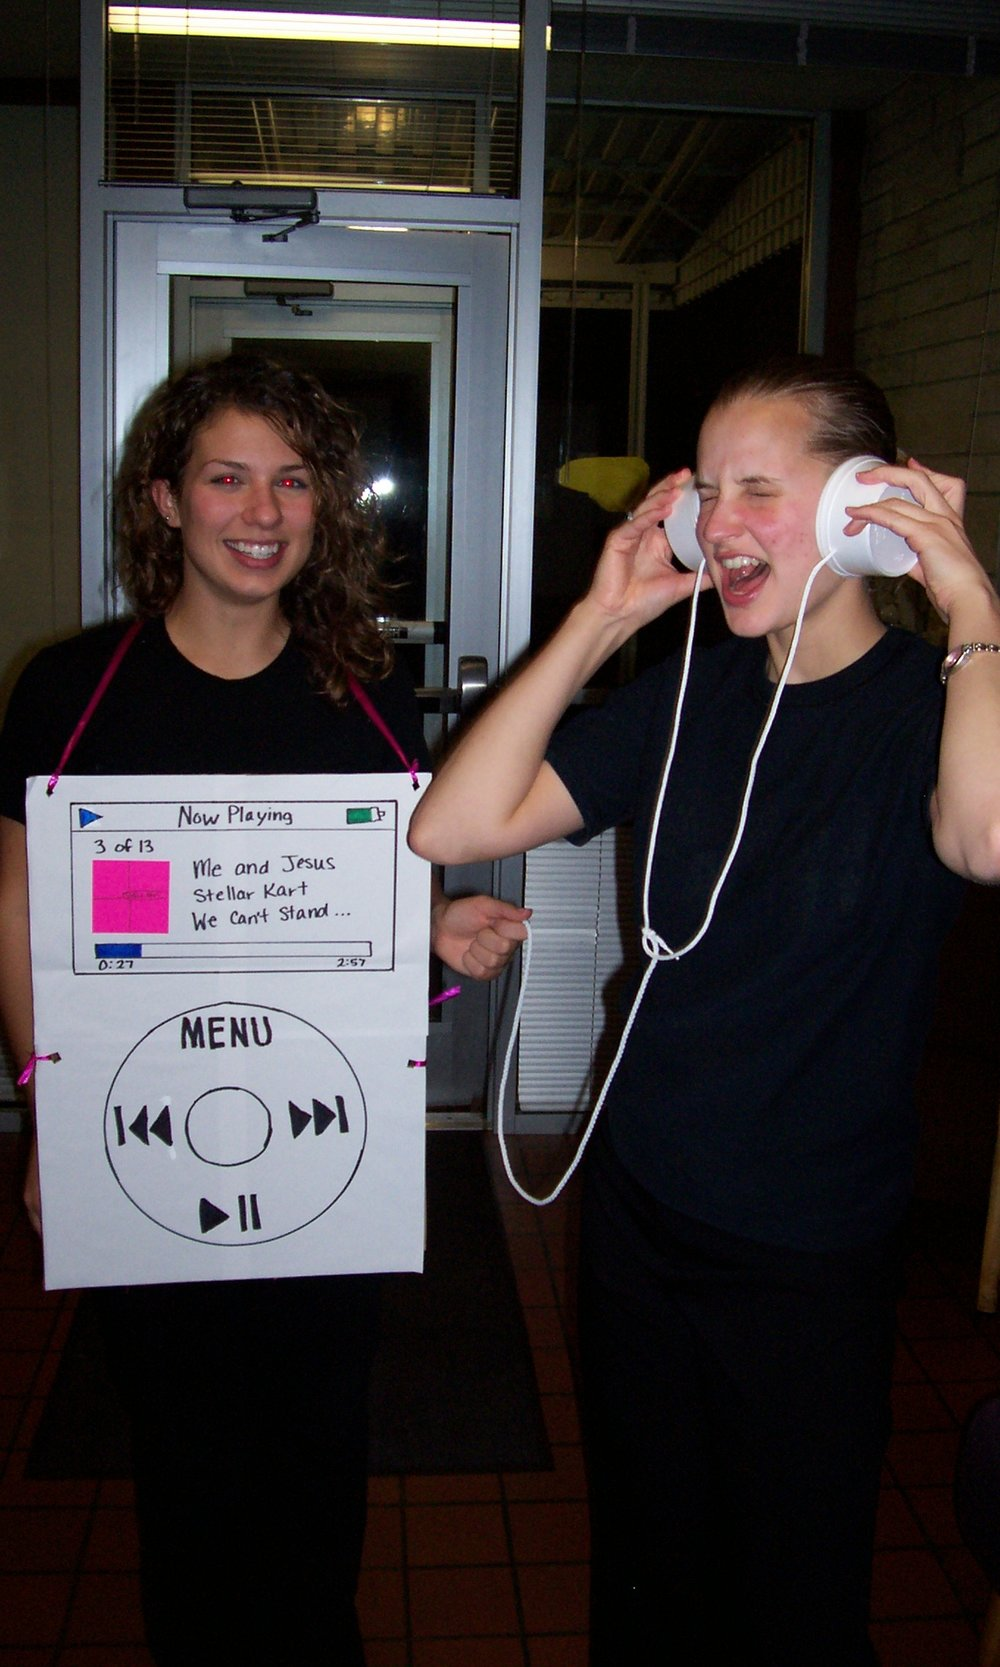 Lauren as an iPod and me tagging along as her listener